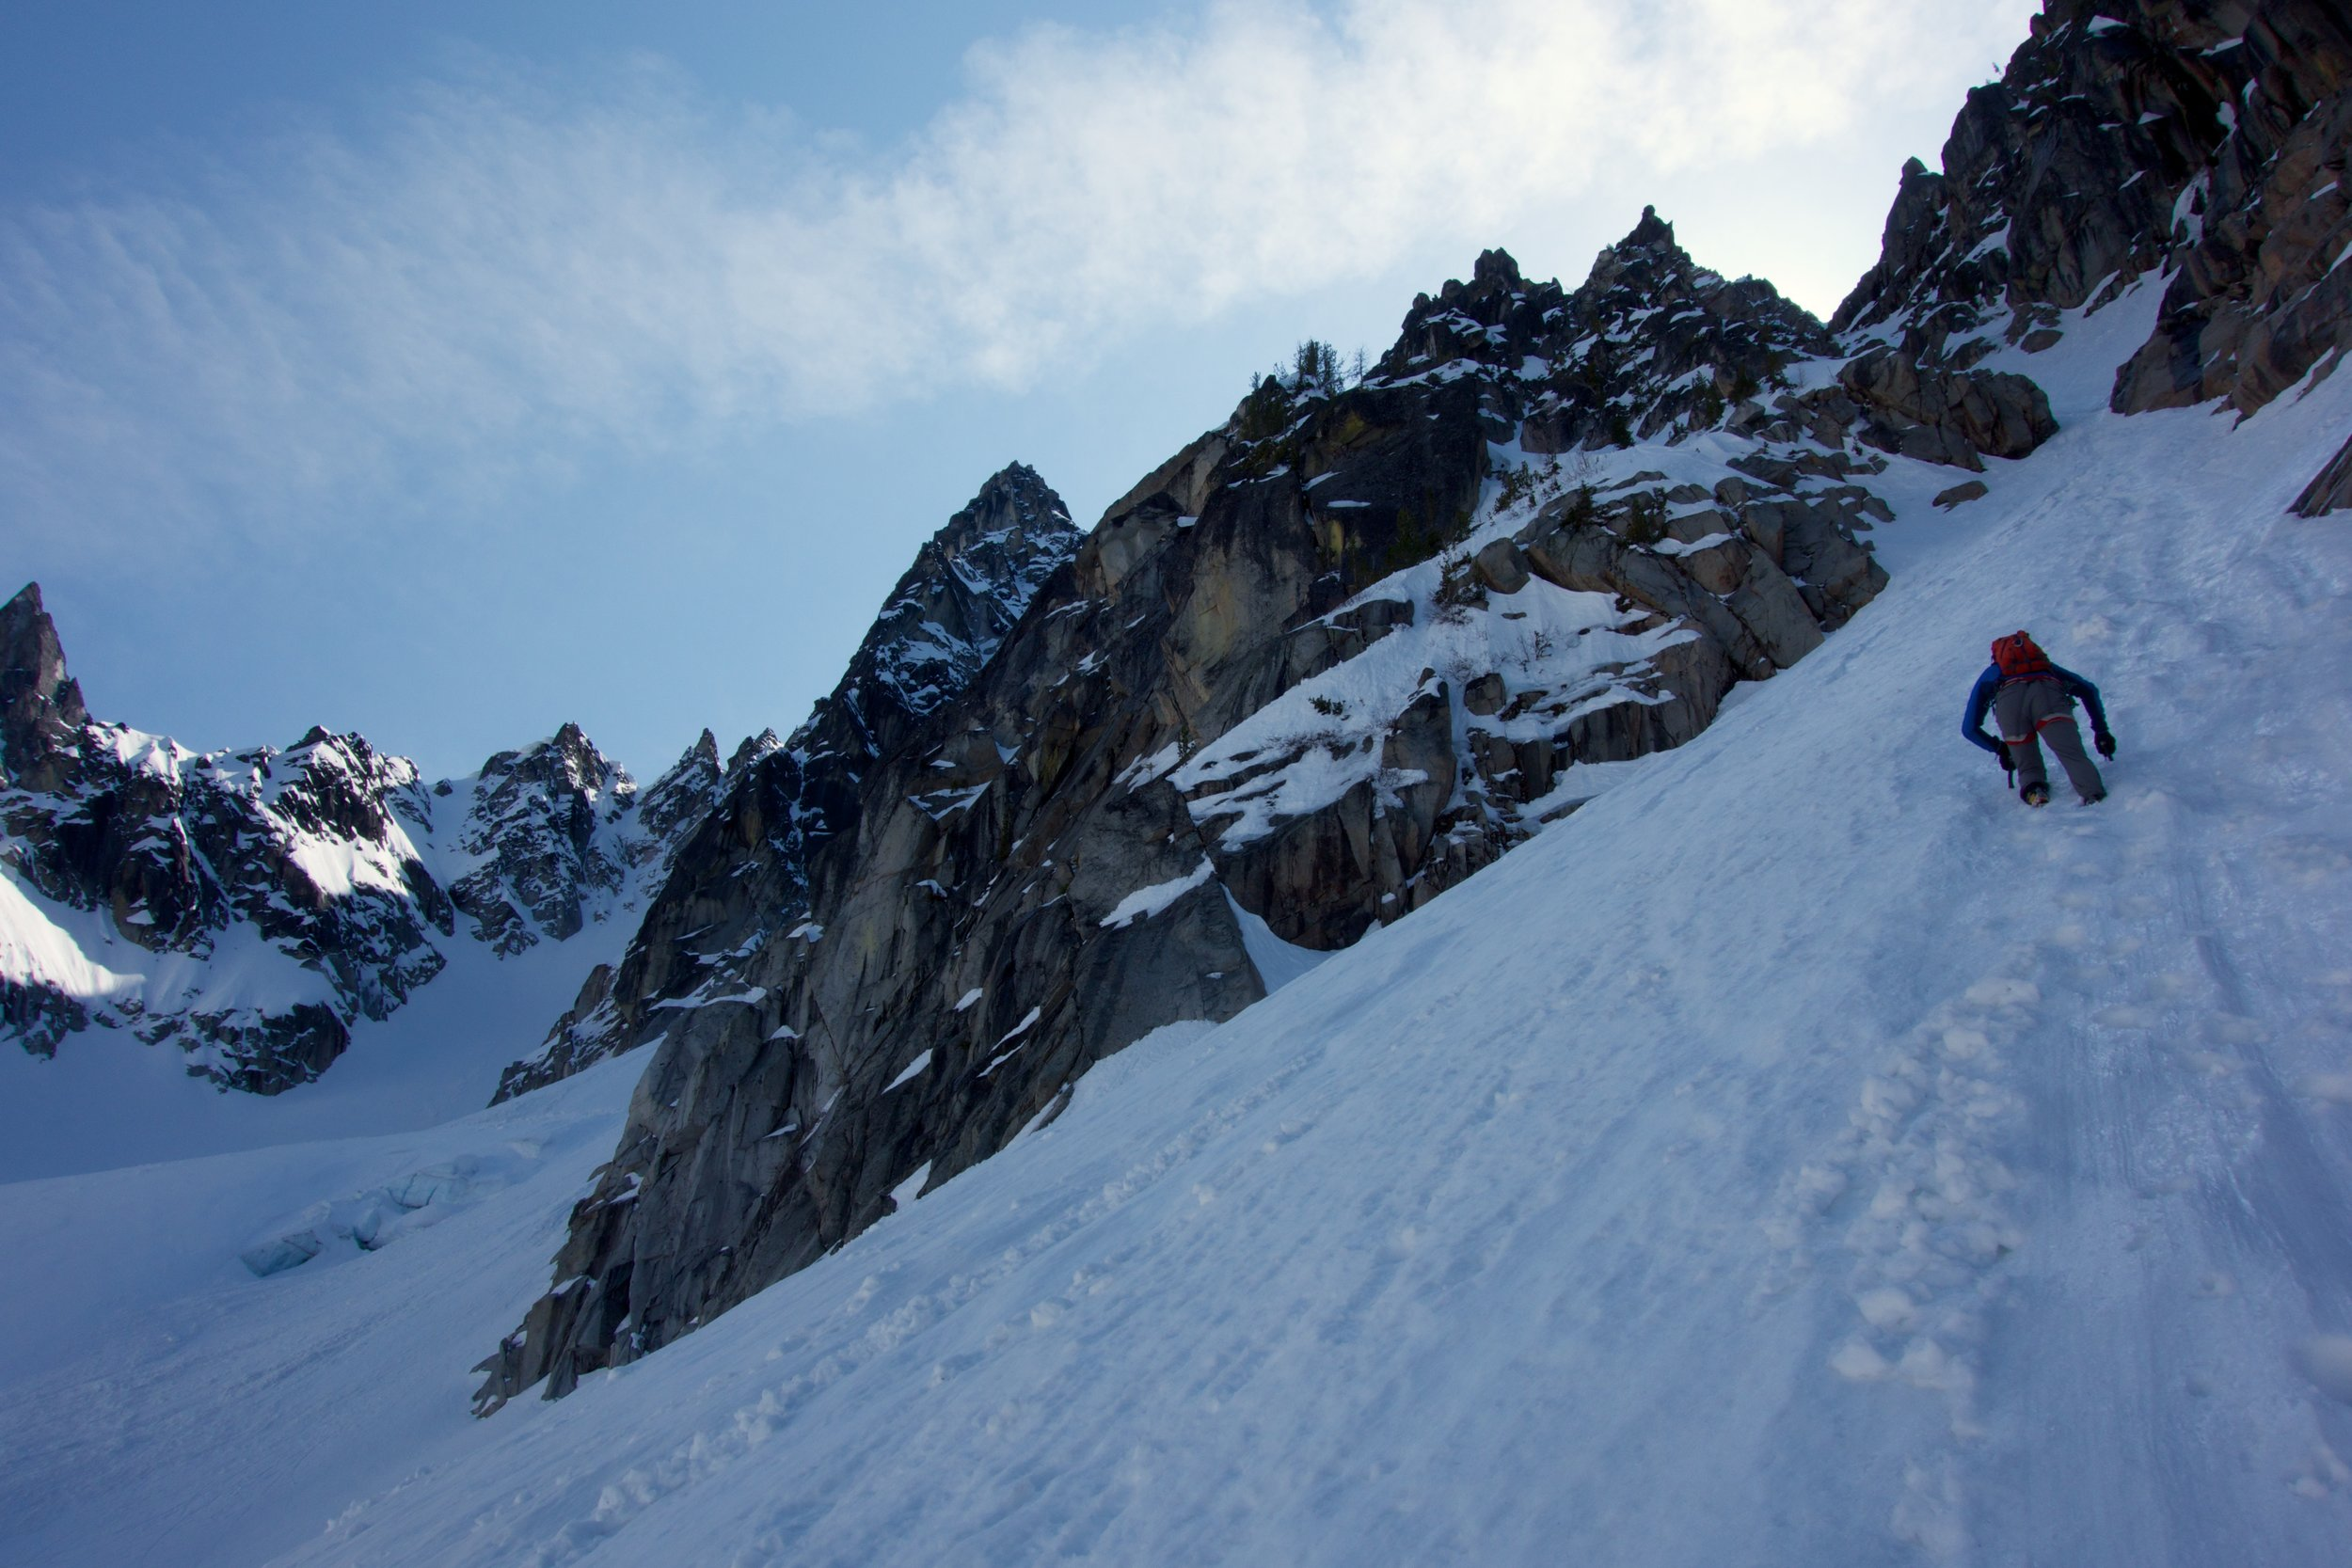 Heading into the base of the couloir